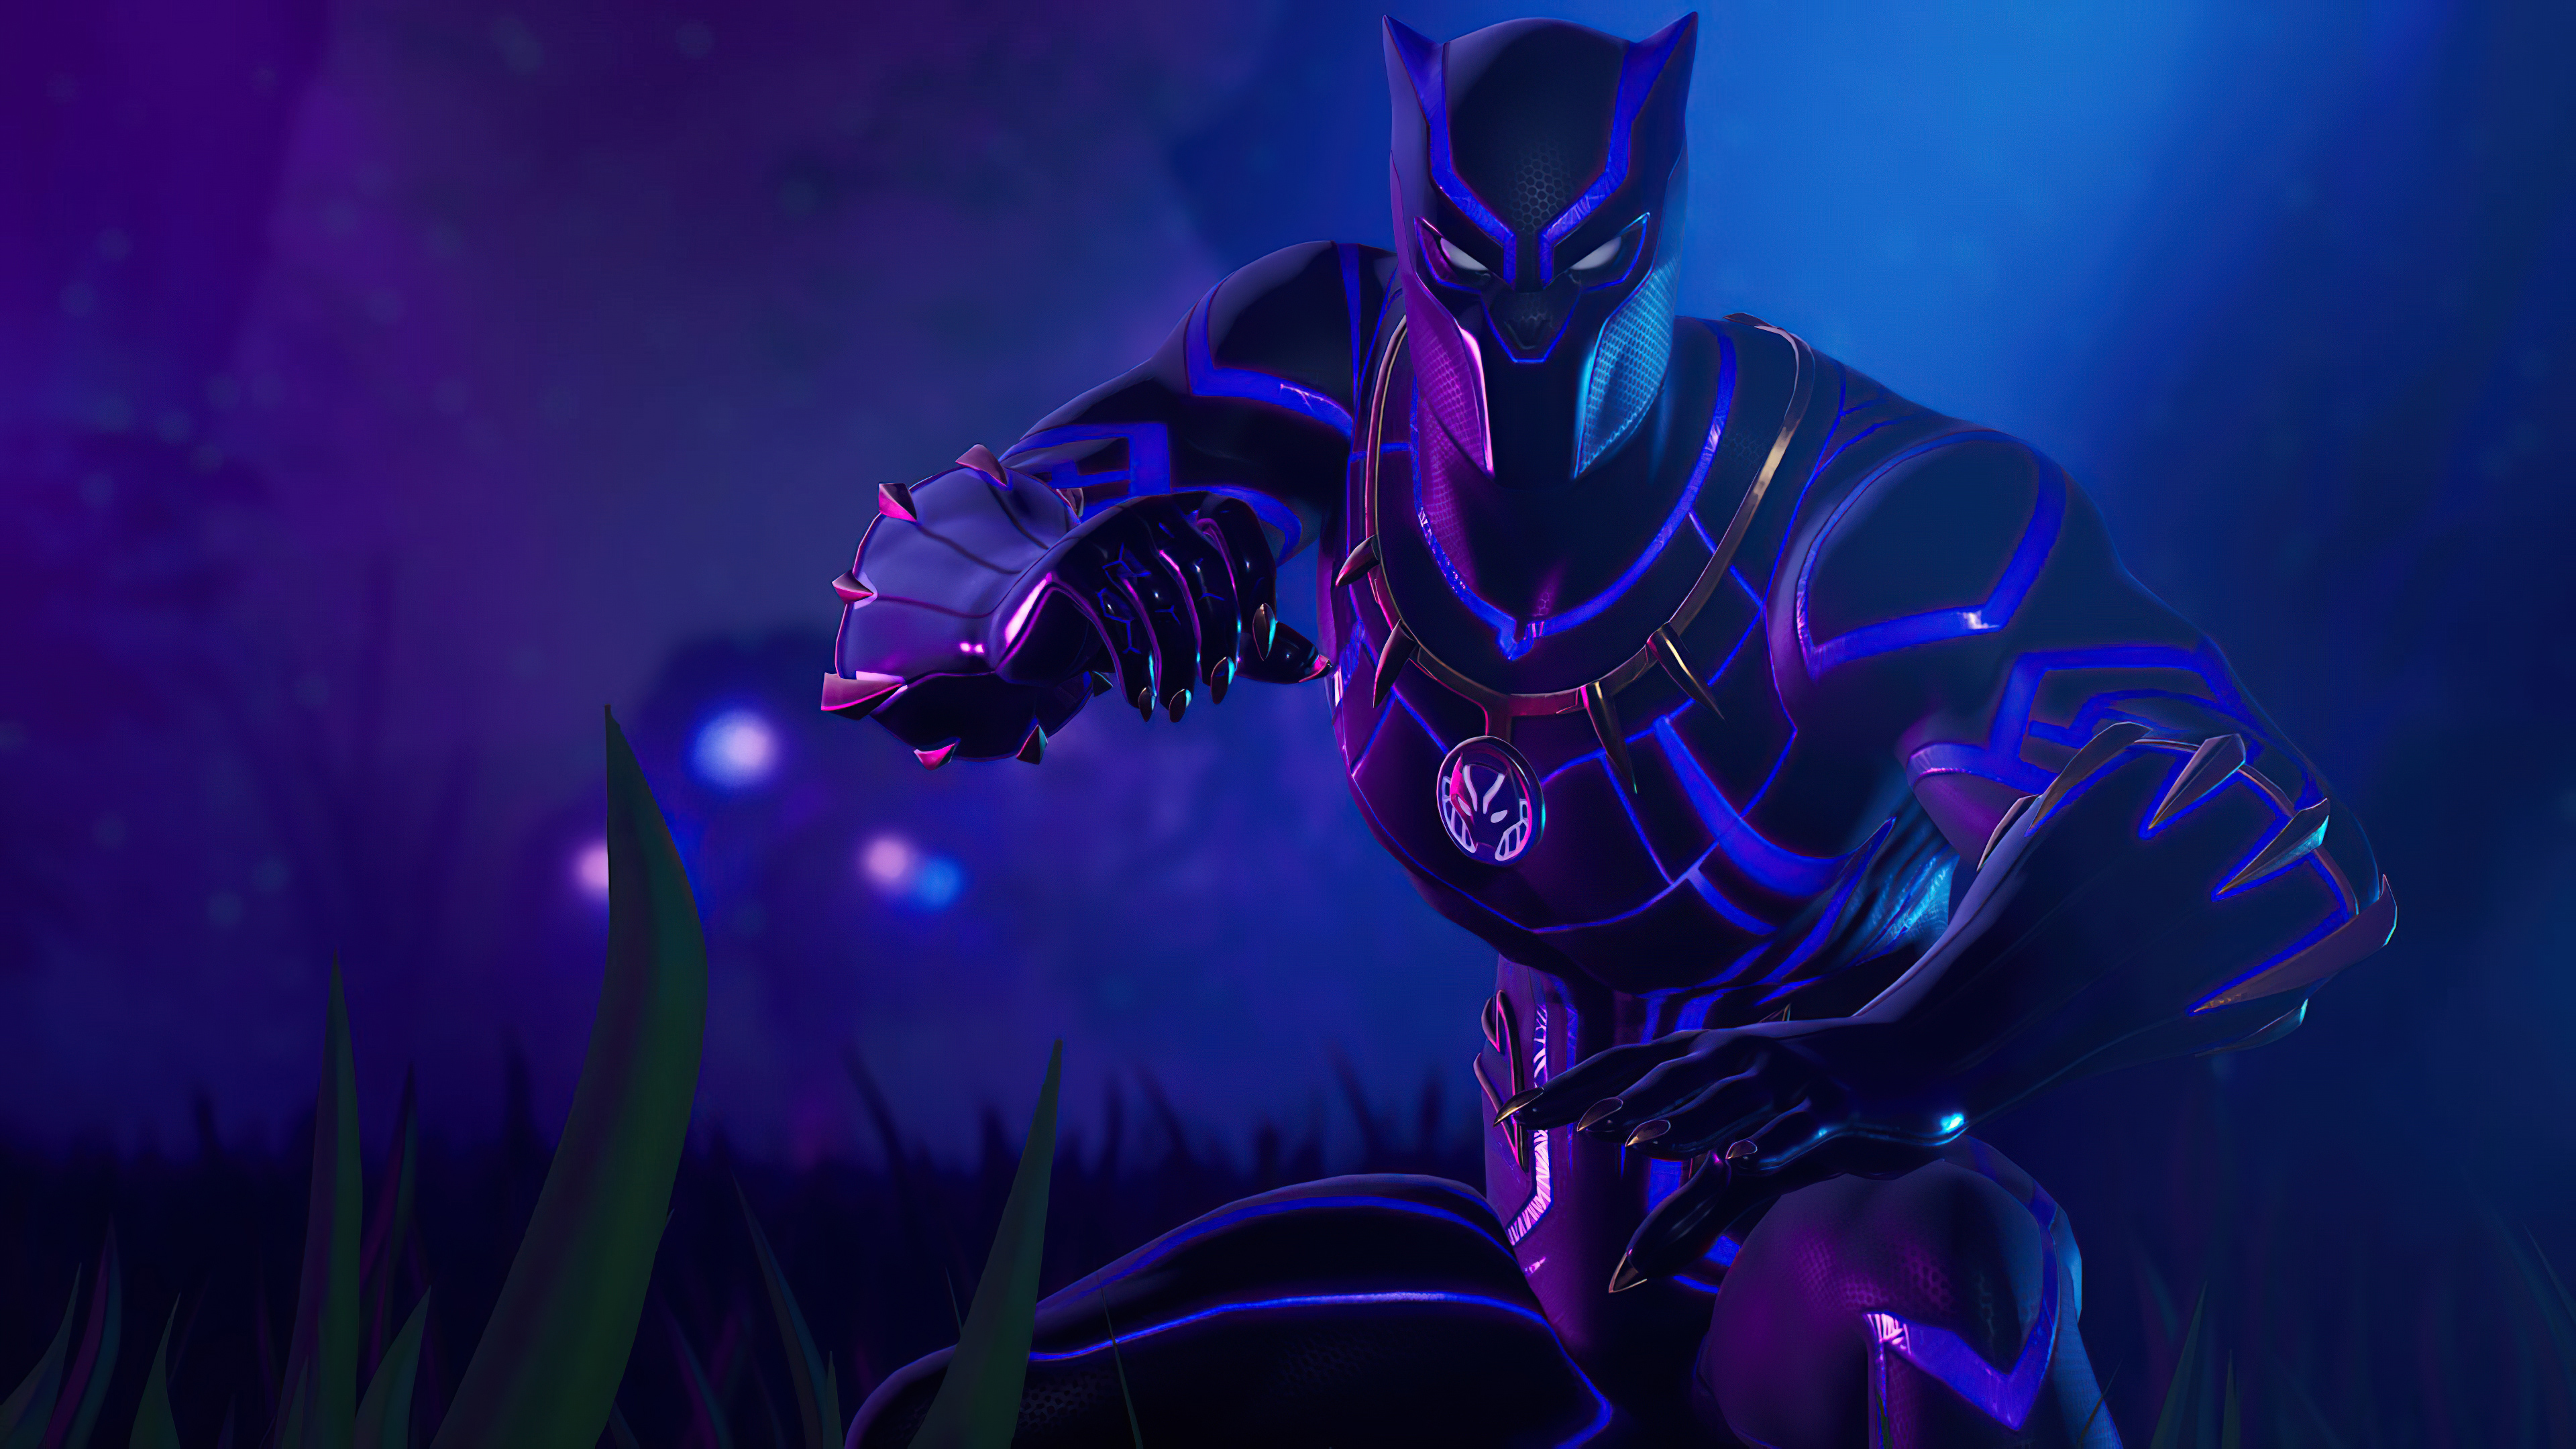 black panther fortnite game 4k 1614859670 - Black Panther Fortnite Game 4k - Black Panther Fortnite Game 4k wallpapers